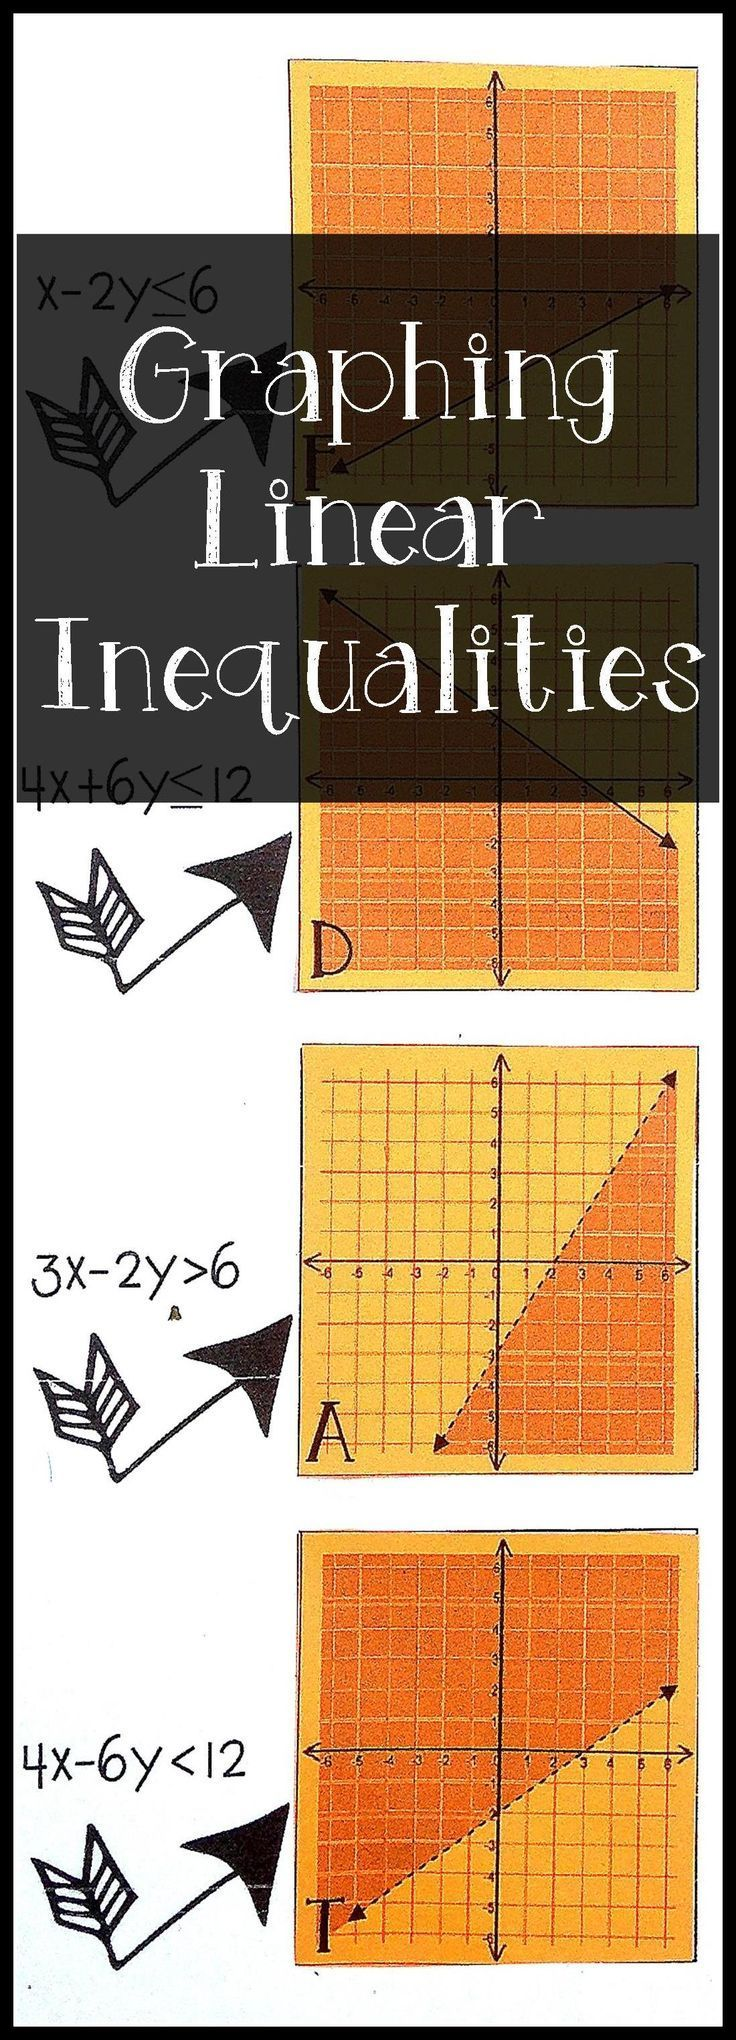 graphing linear inequalities card match activity activities student and the o 39 jays. Black Bedroom Furniture Sets. Home Design Ideas